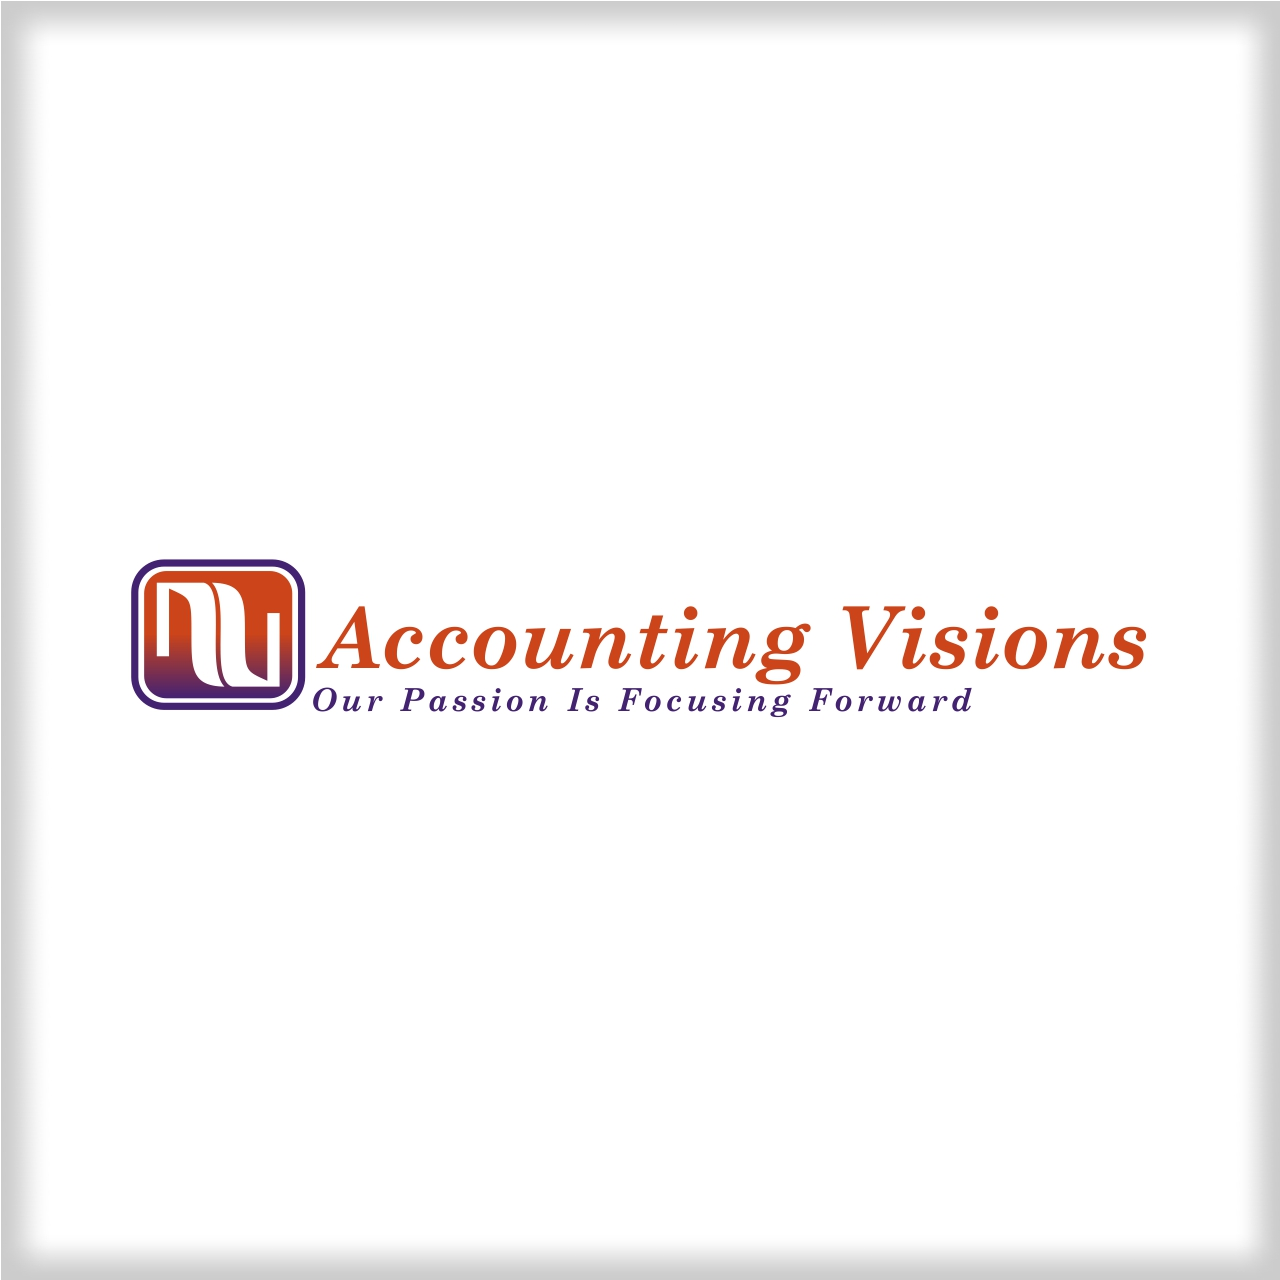 Logo Design by martinz - Entry No. 23 in the Logo Design Contest Accounting Visions.